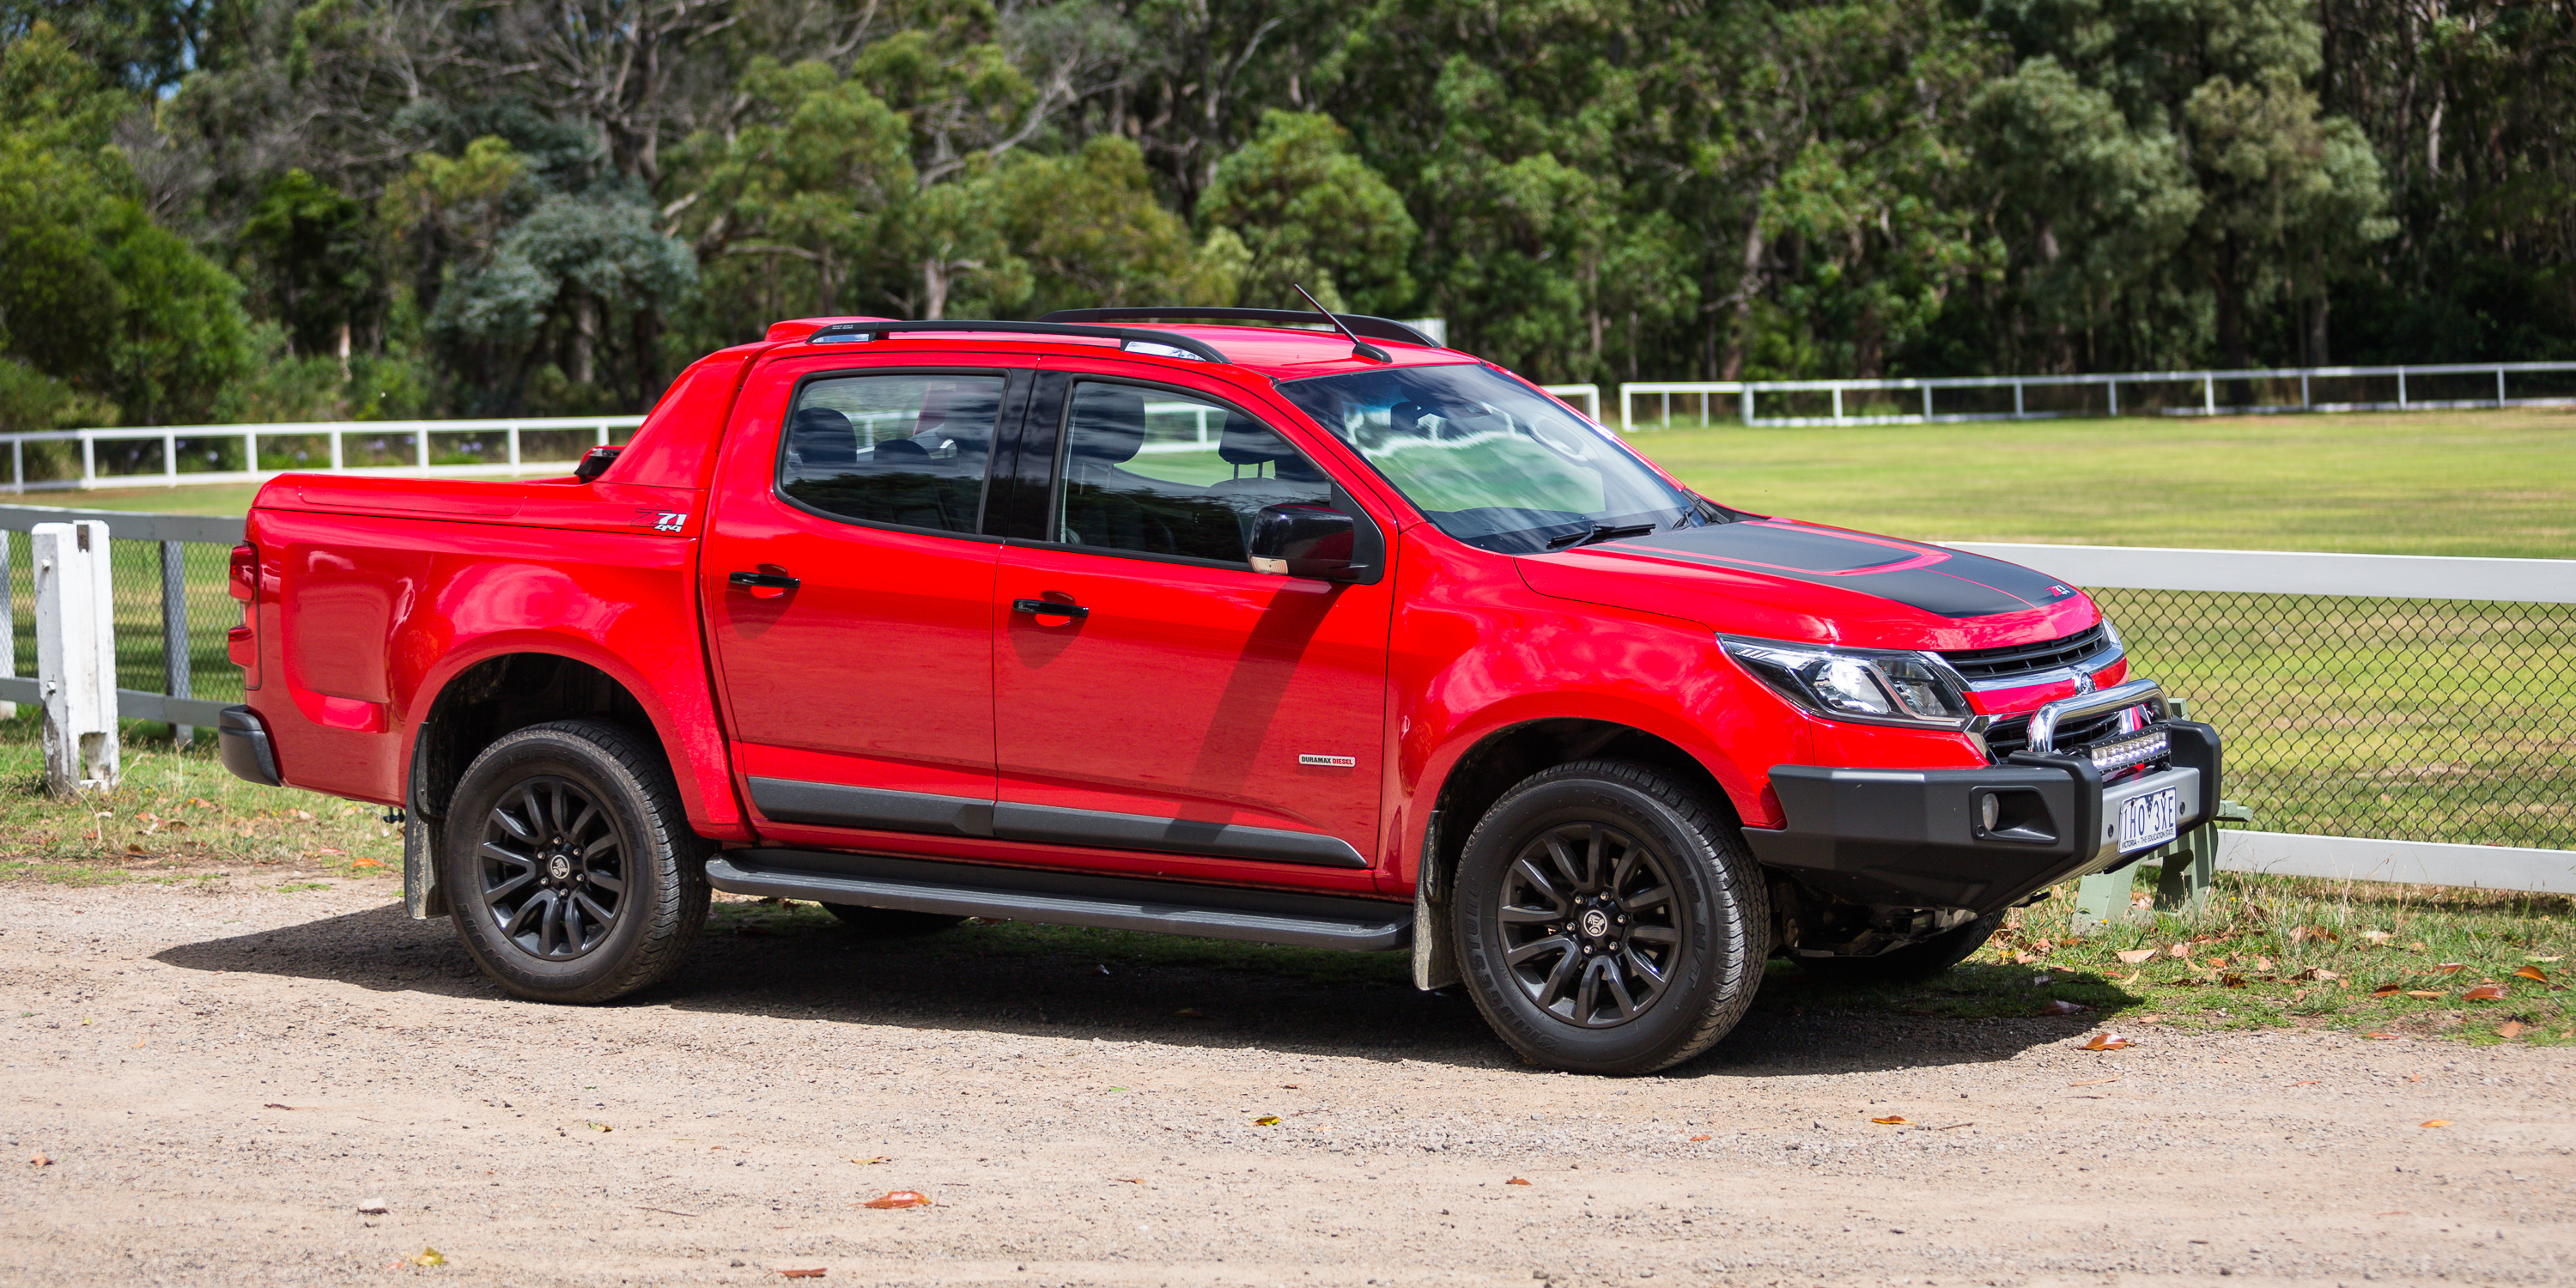 2017 Holden Colorado Z71 review: Long-term report one ...